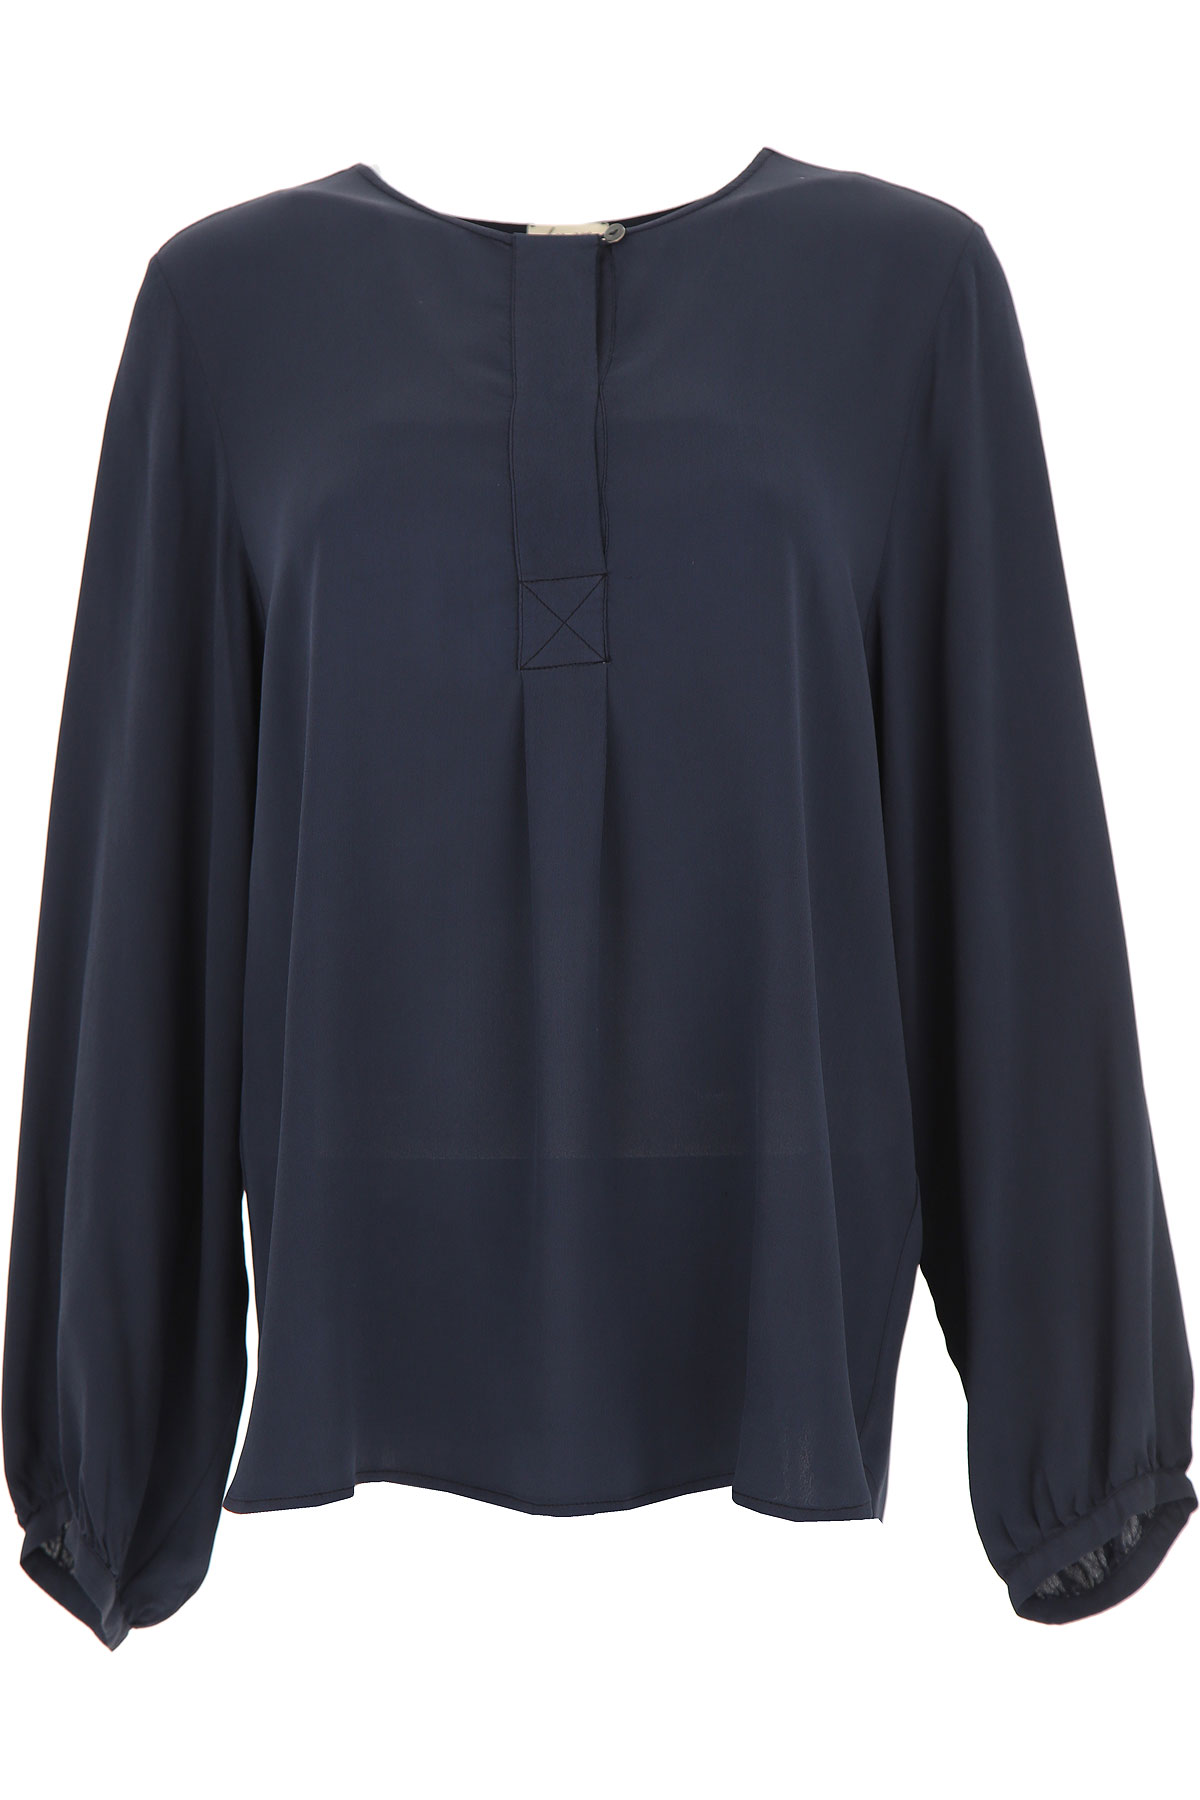 Image of Her Shirt Shirt for Women On Sale, Blue, Viscose, 2017, 2 8